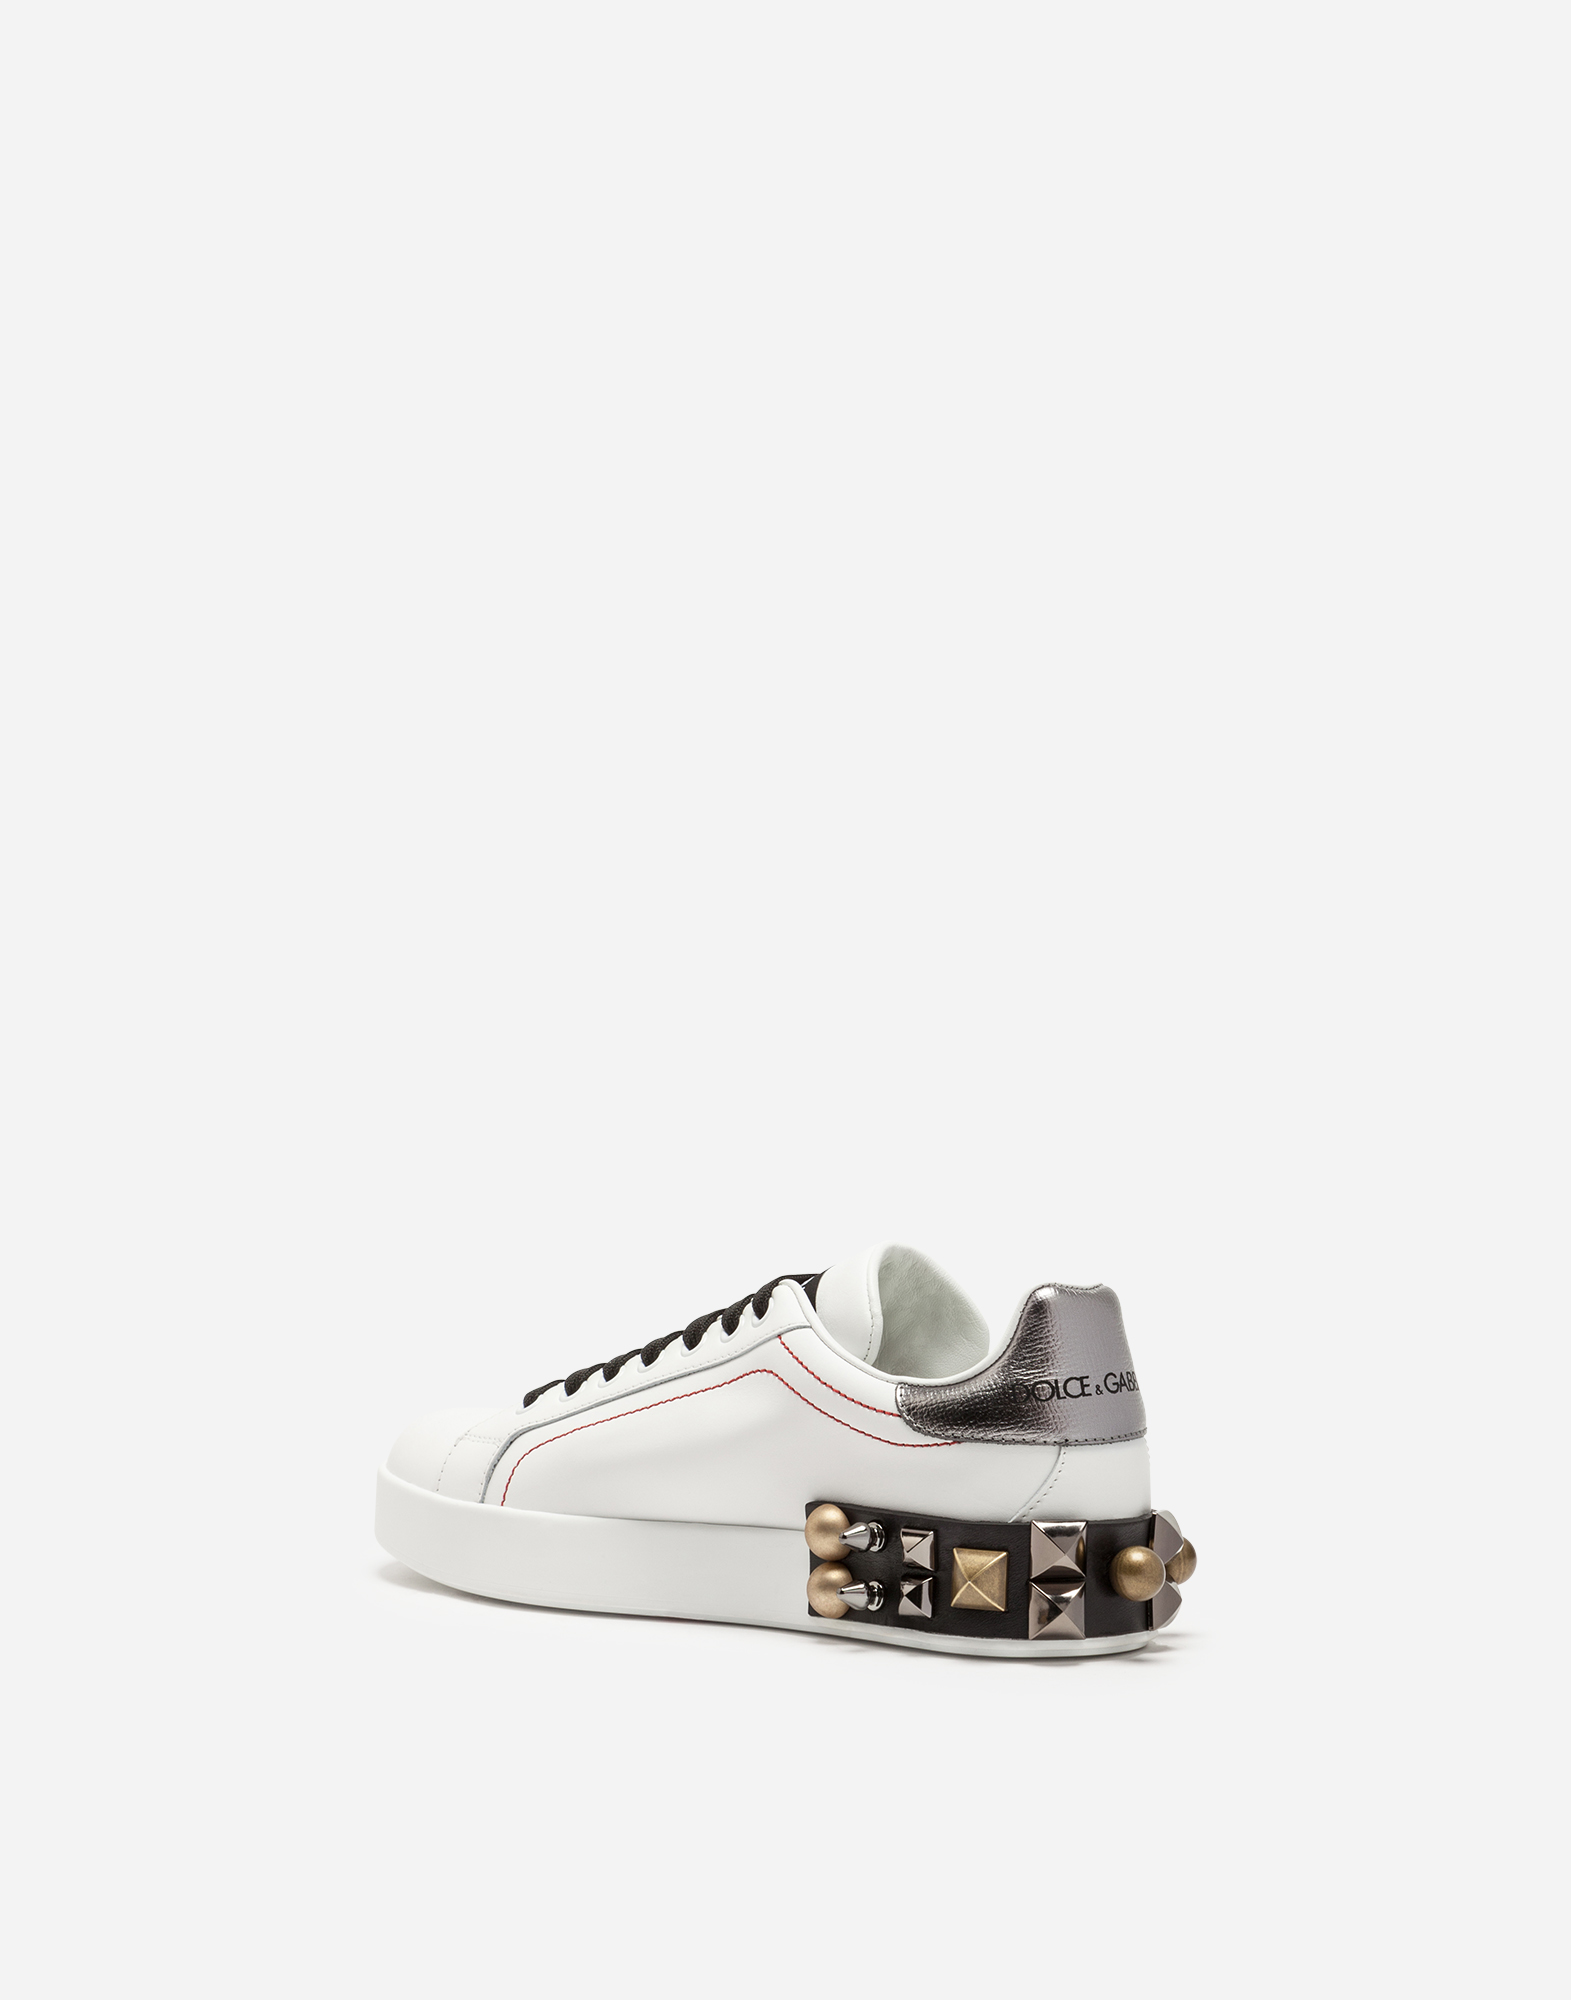 Dolce&Gabbana PORTOFINO SNEAKERS IN PRINTED CALFSKIN WITH APPLIQUÉS